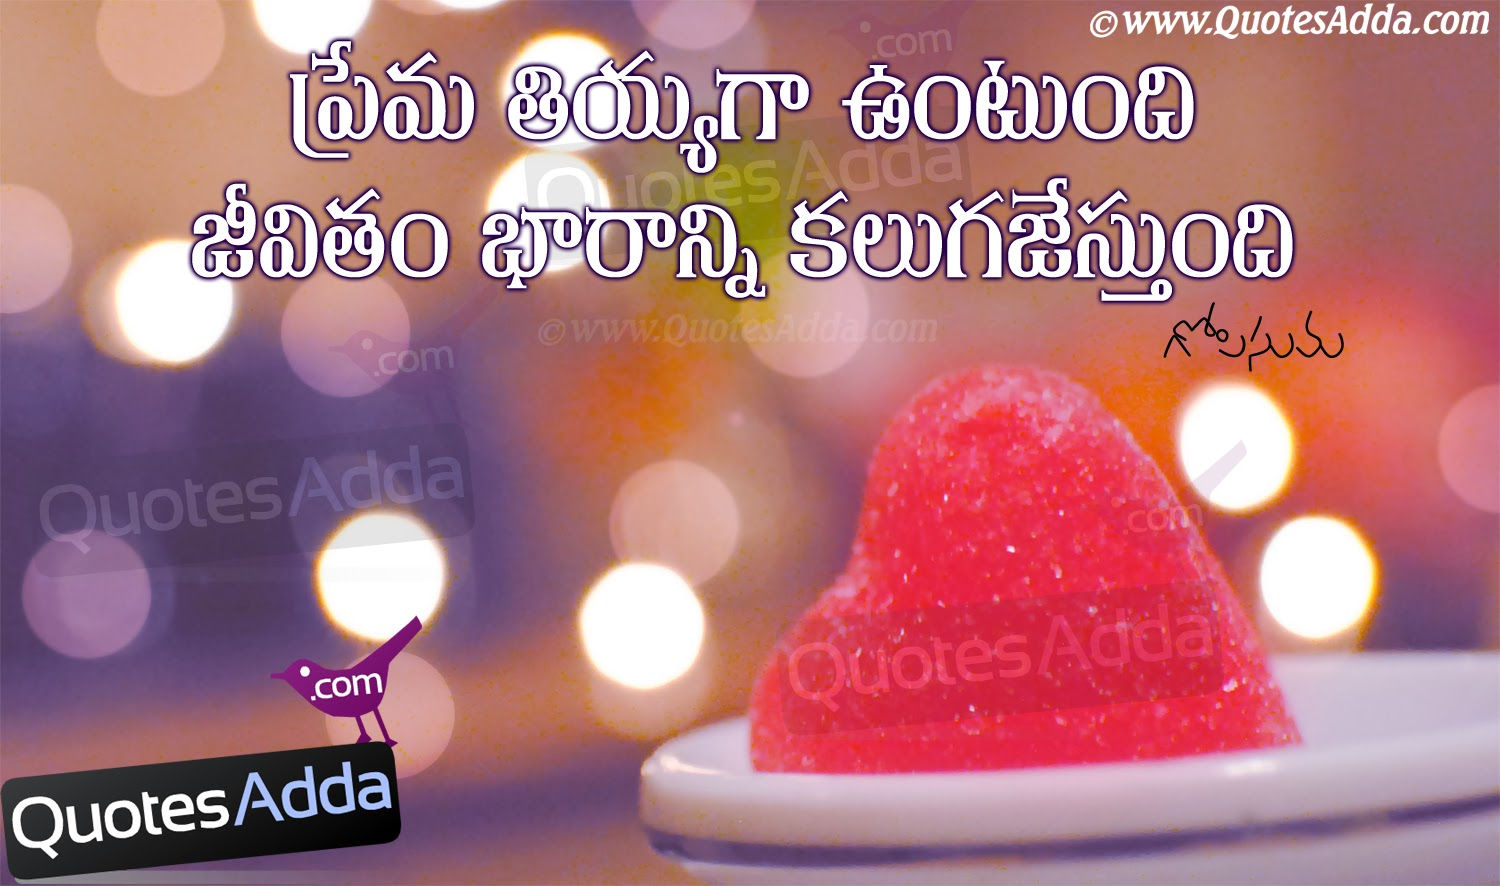 Funny Quotes About Love In Telugu : Life Quotes In Telugu Relashanship. QuotesGram